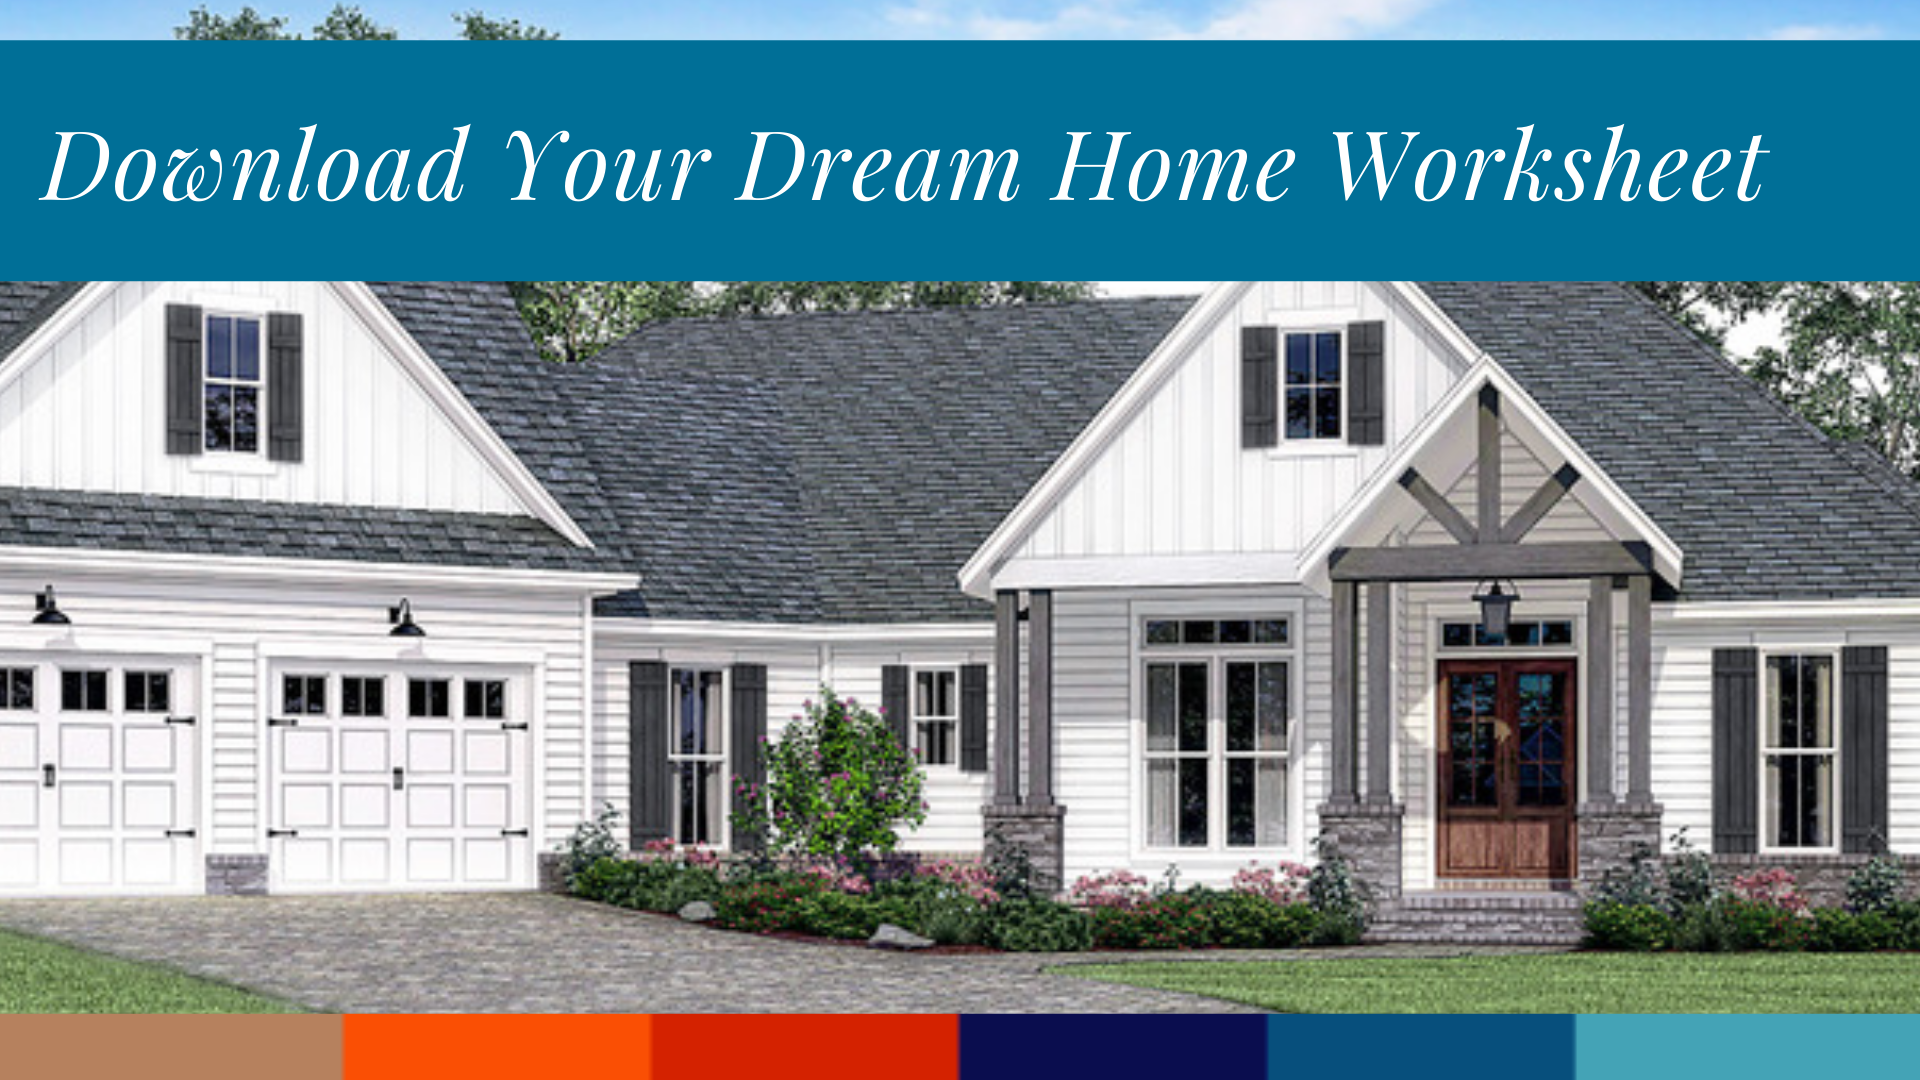 Design Your Dream Home Worksheet In